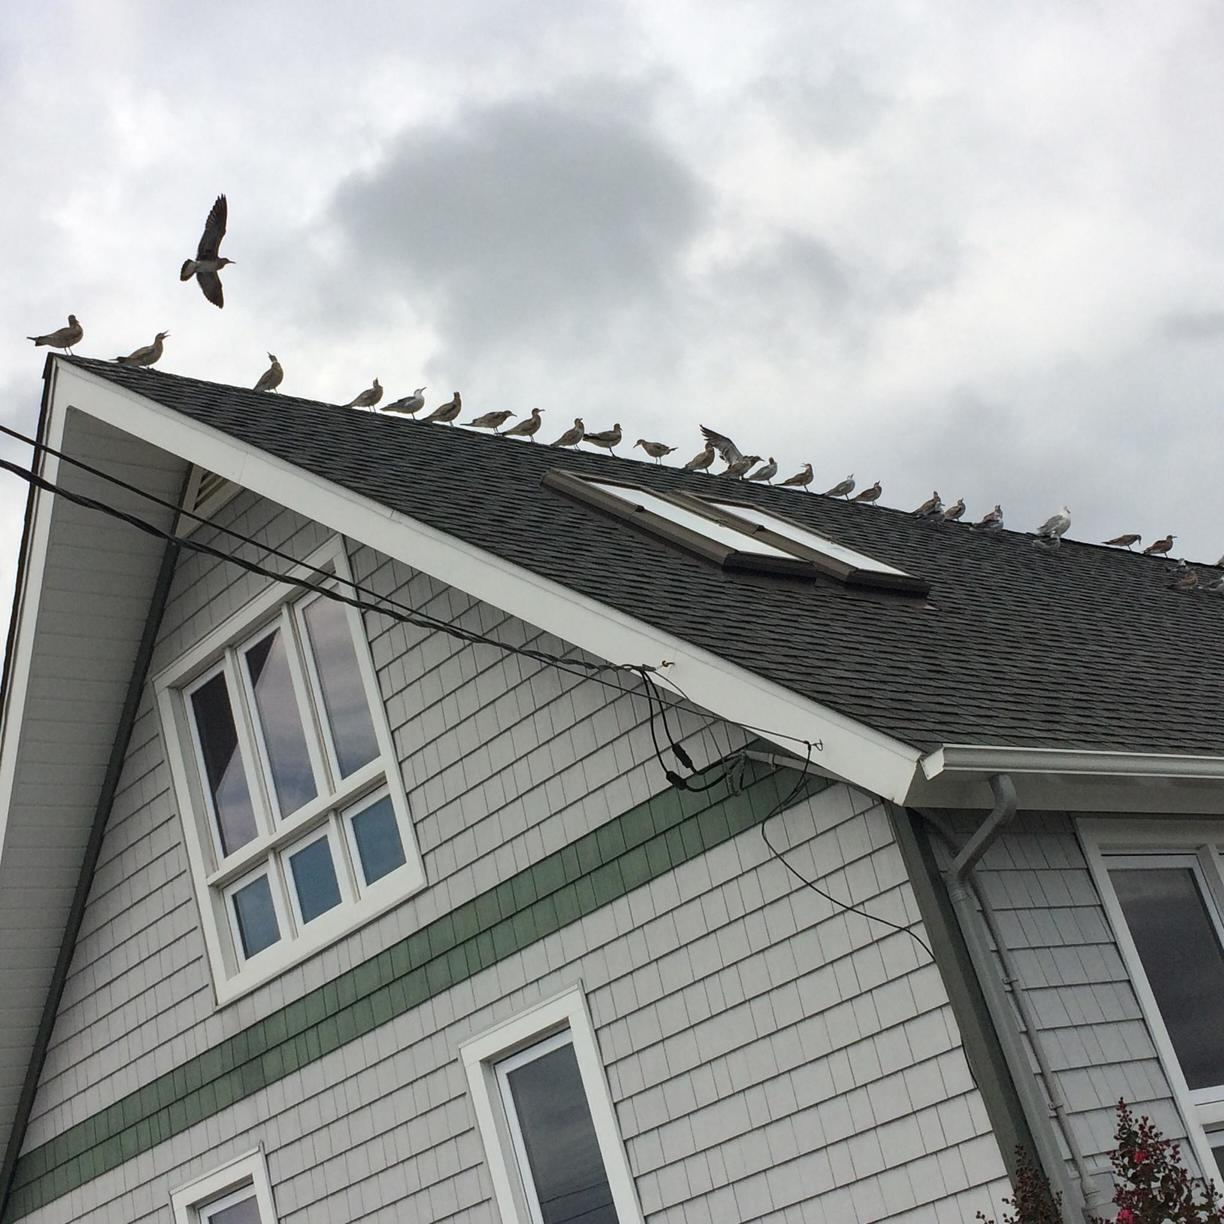 Birds causing havoc - Bird control and removal services in Pine Beach - Before Photo